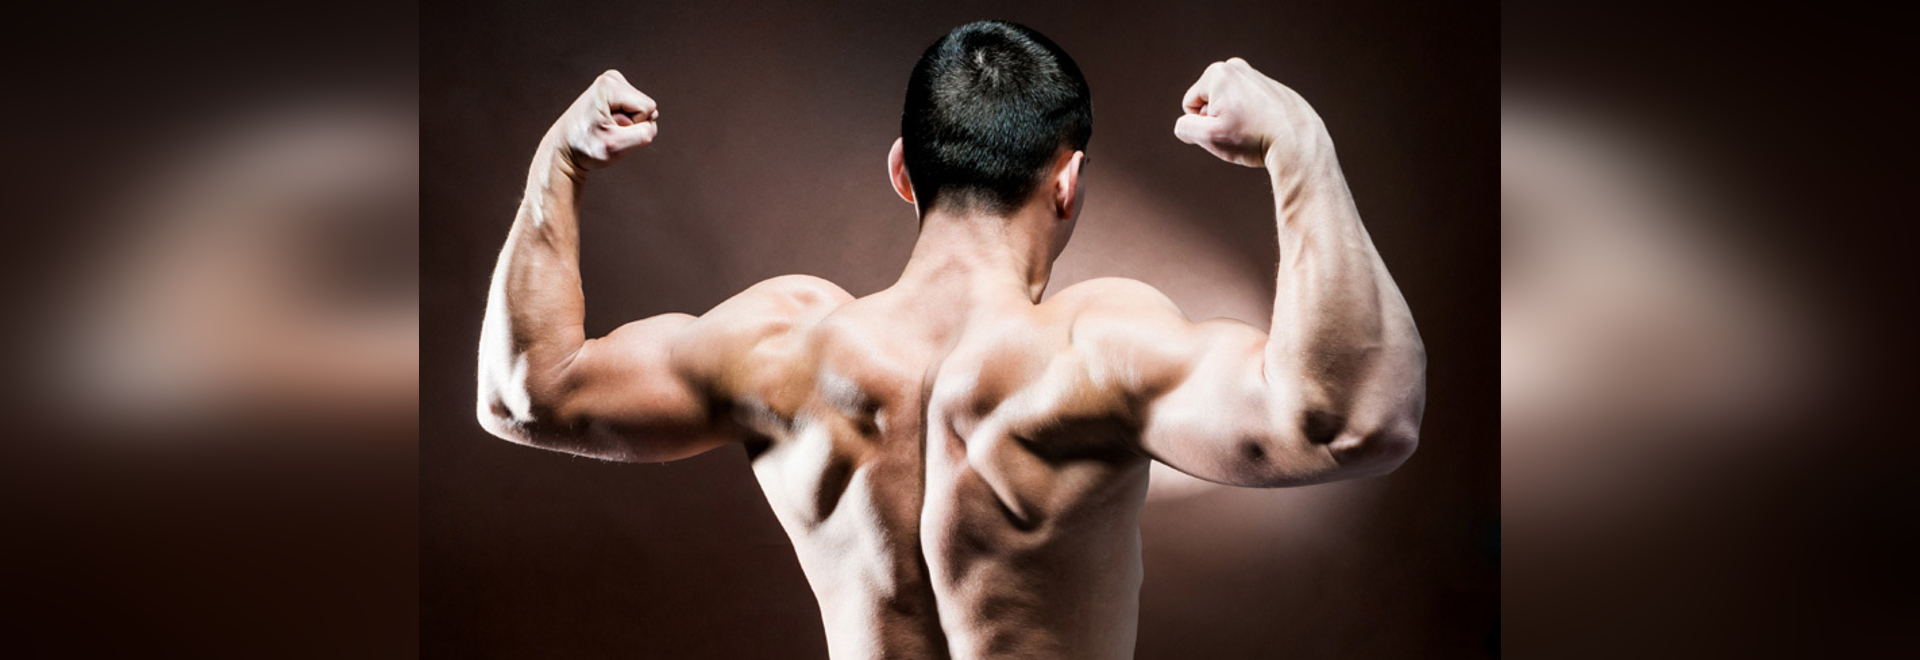 Synthetic Microbial Process Produces Muscle Fibers That Are Stronger than Kevlar